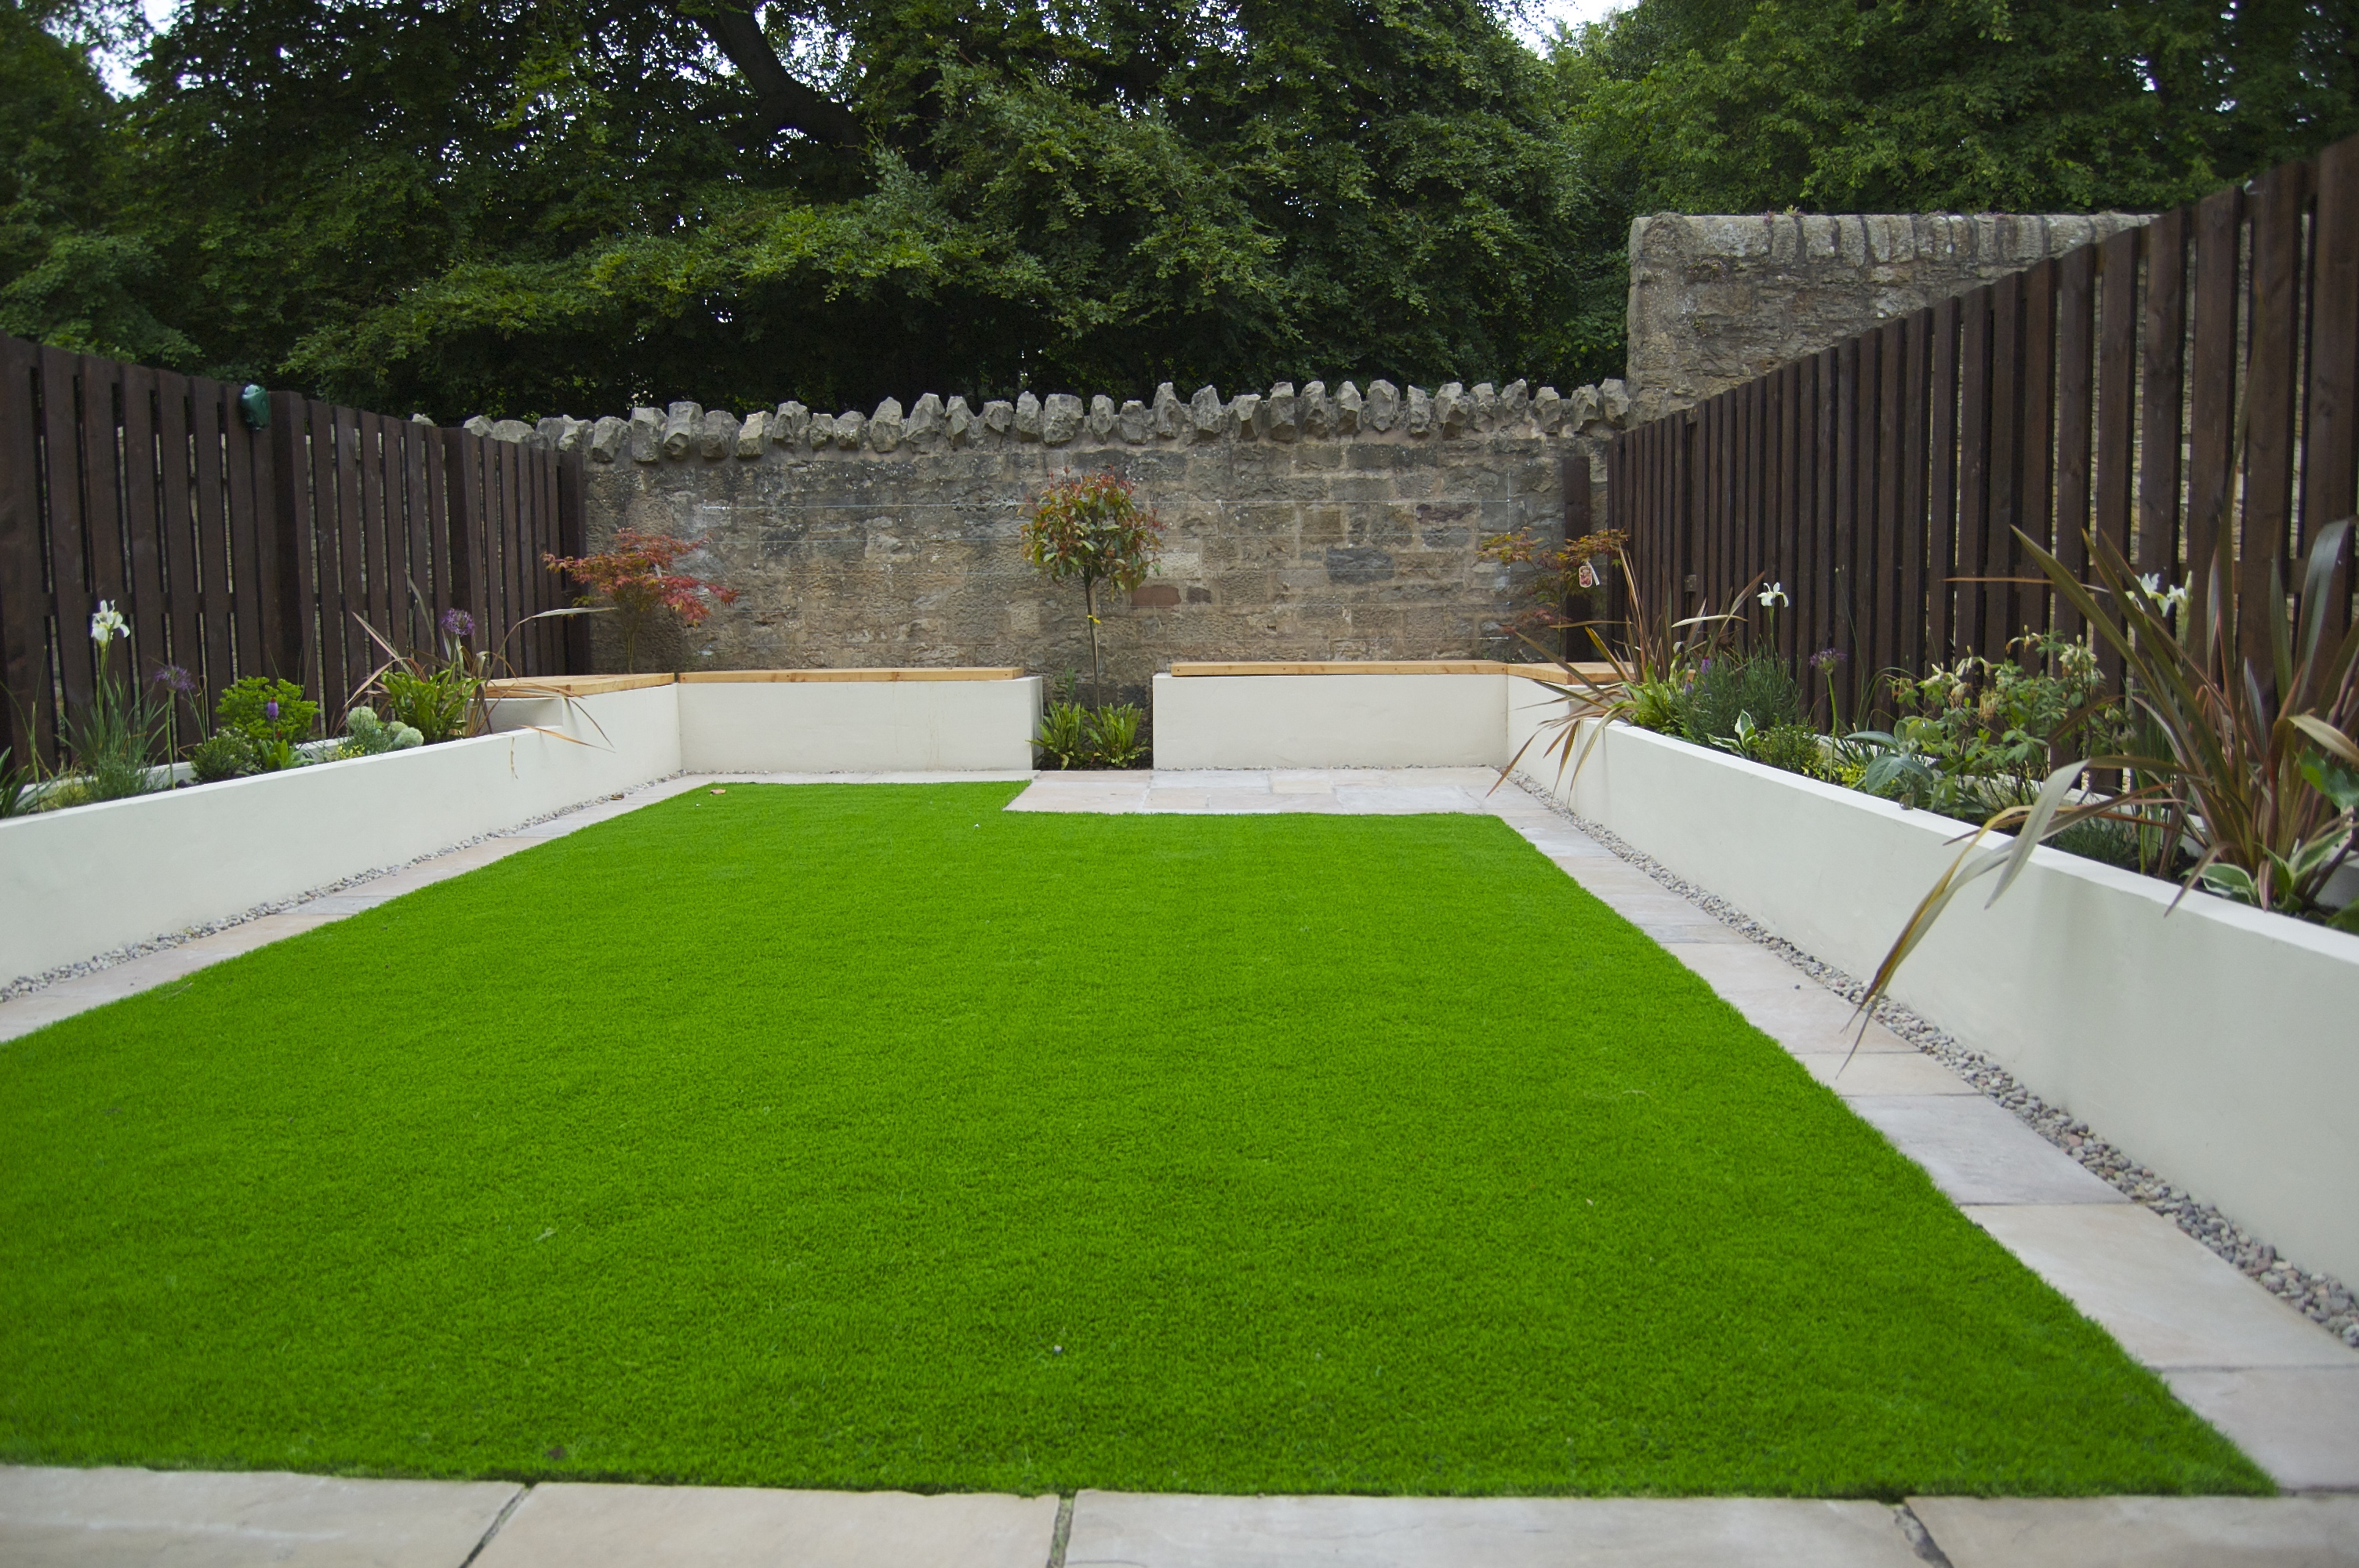 Lawn Garden Design Image Alluring Artifcial Lawn  Garden Design Project  Paul Church Gardens Inspiration